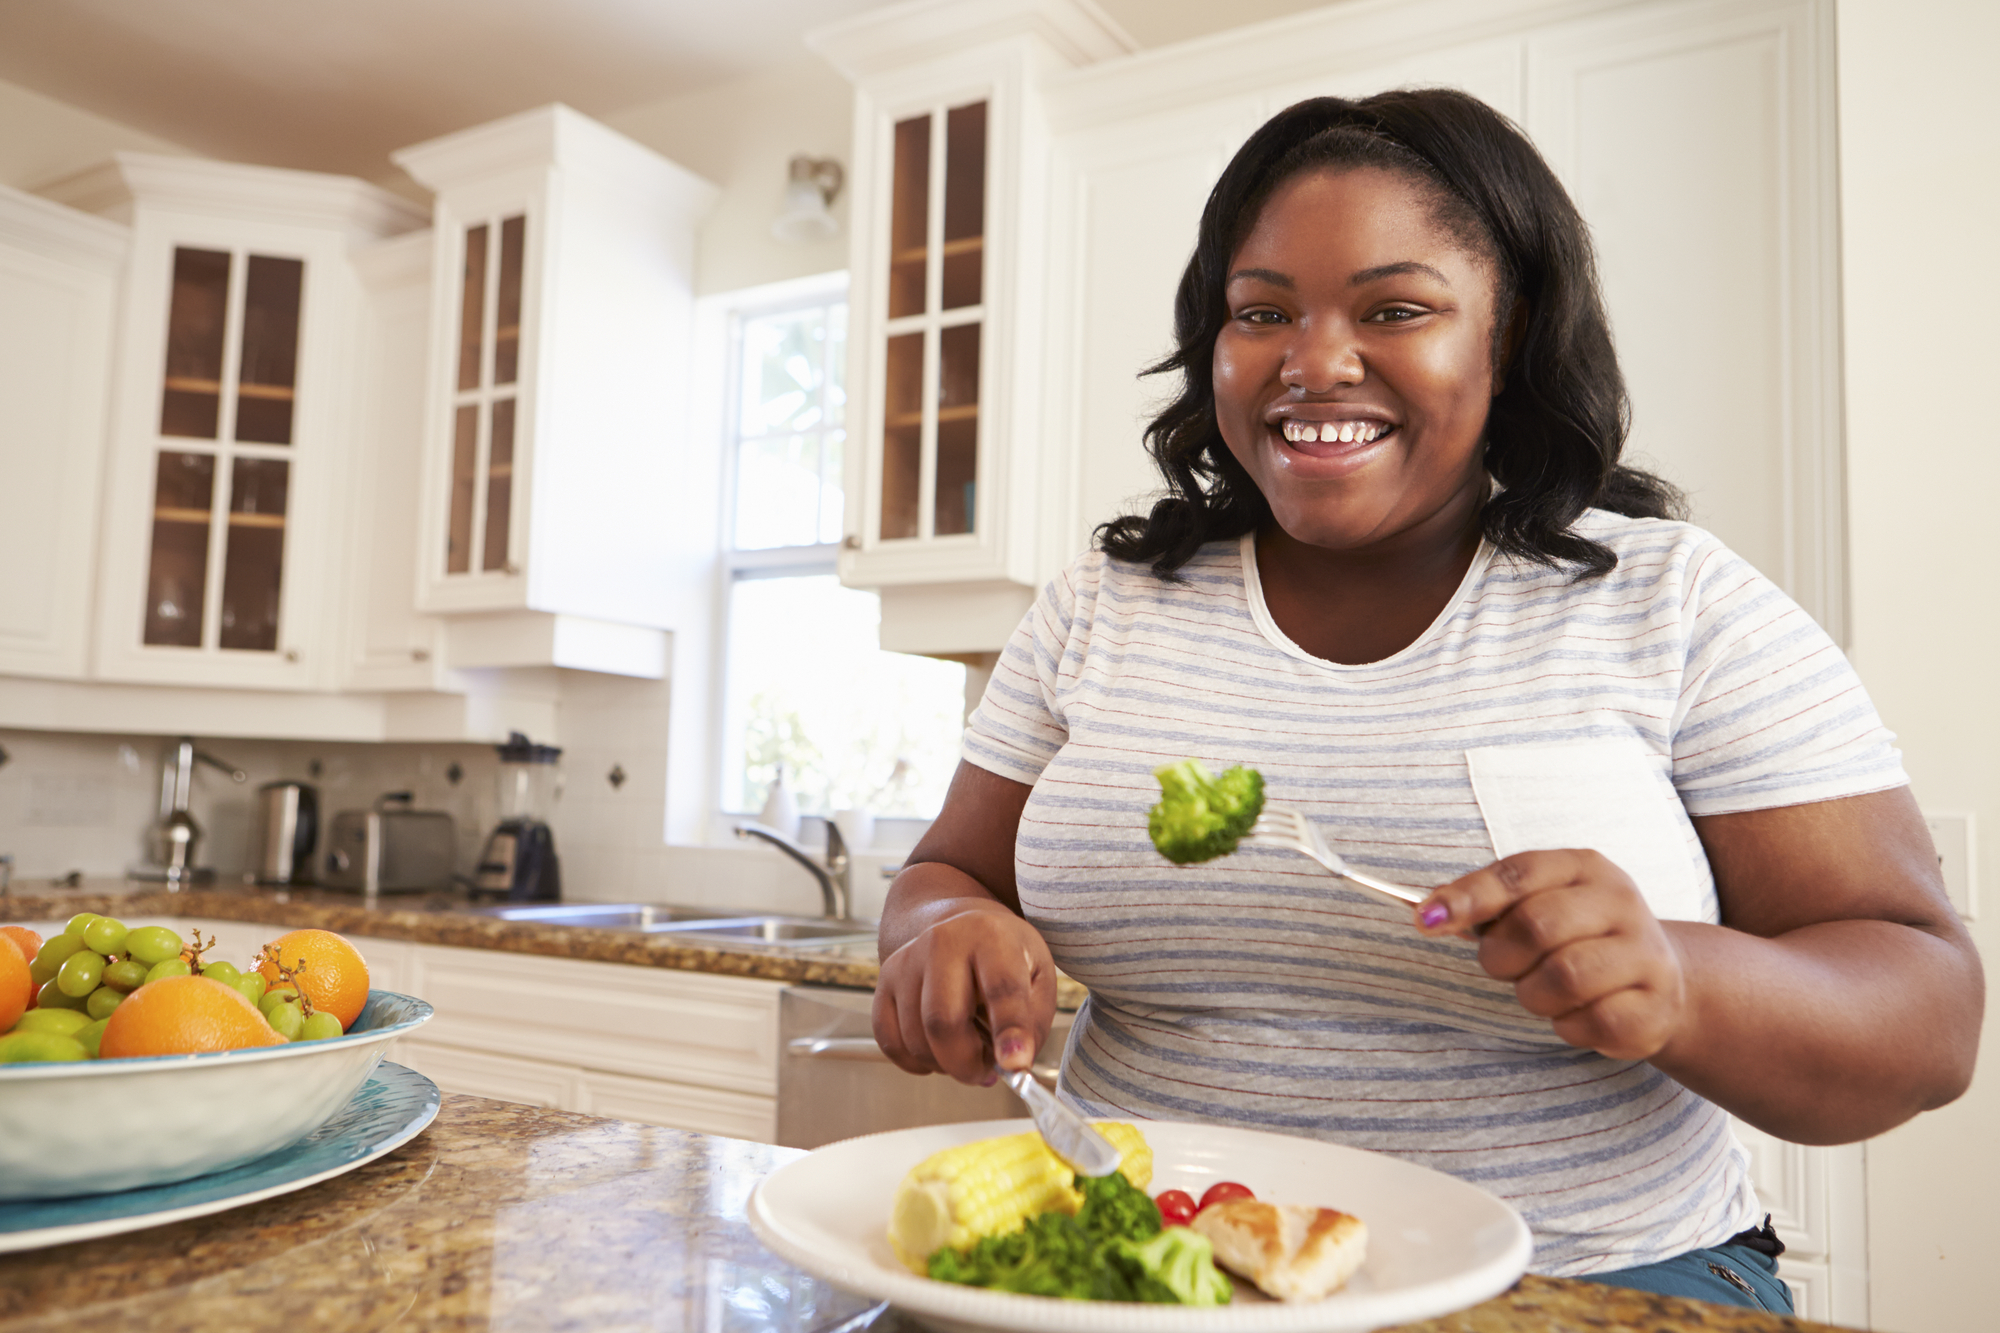 A fat Black woman in a white tshirt sitting at her counter and eating a plate of food with a smile on her face